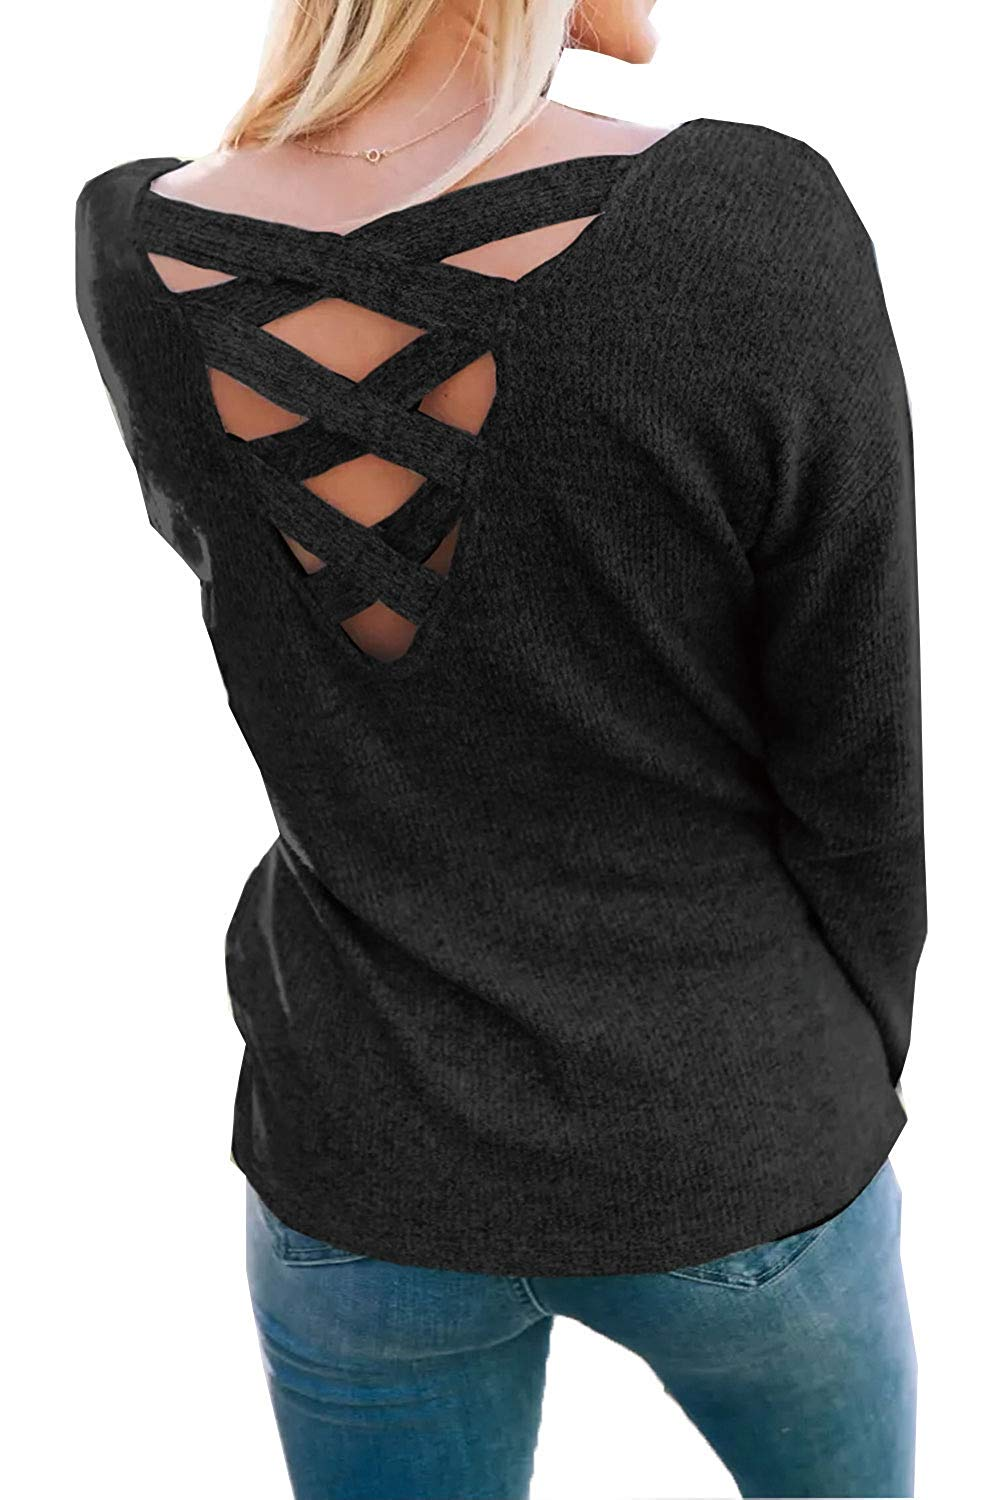 27fb9a001f0 Get Quotations · Womens Criss Cross Sweater Pullover Cut Out Tops Backless  Fall Tunic Blouse